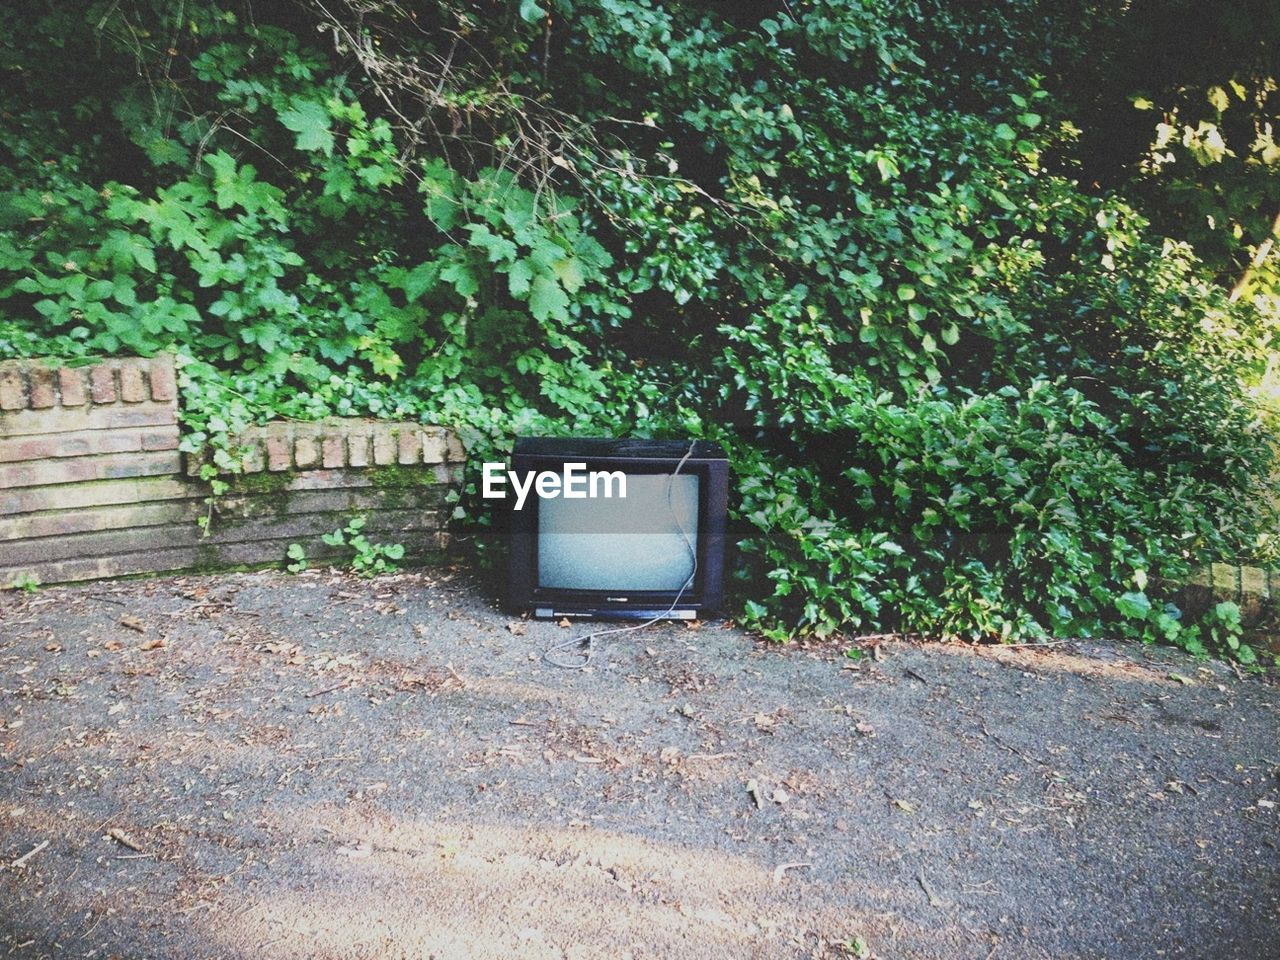 View of an abandoned television against plants